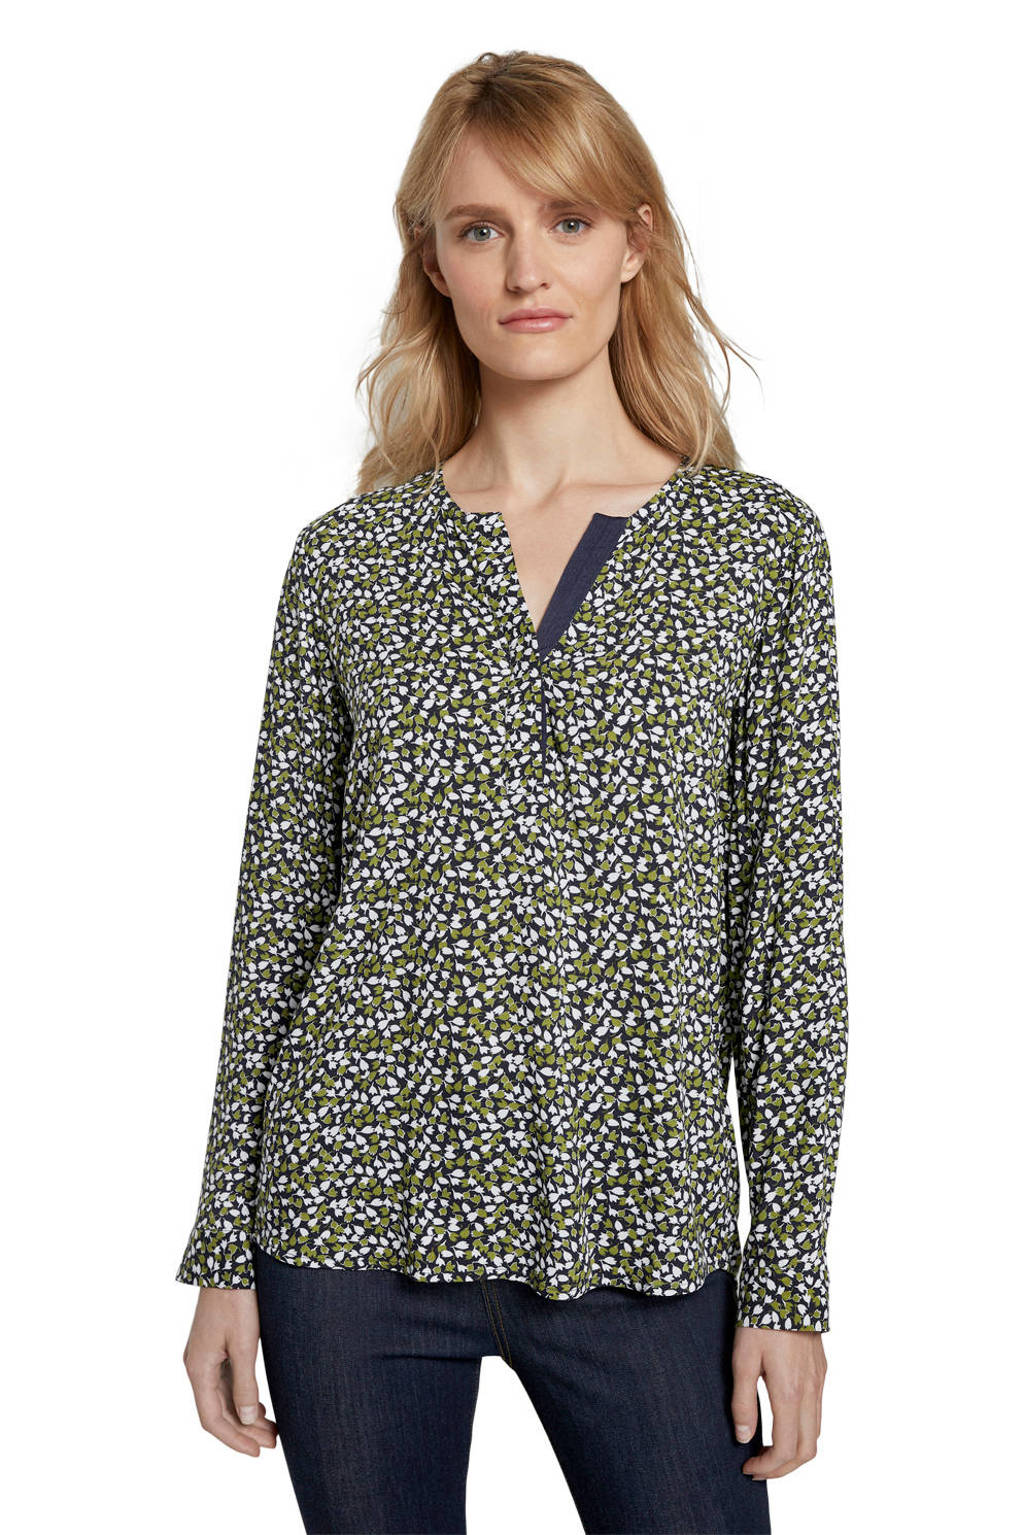 Tom Tailor blouse met all over print donkerblauw/groen/wit, Donkerblauw/groen/wit